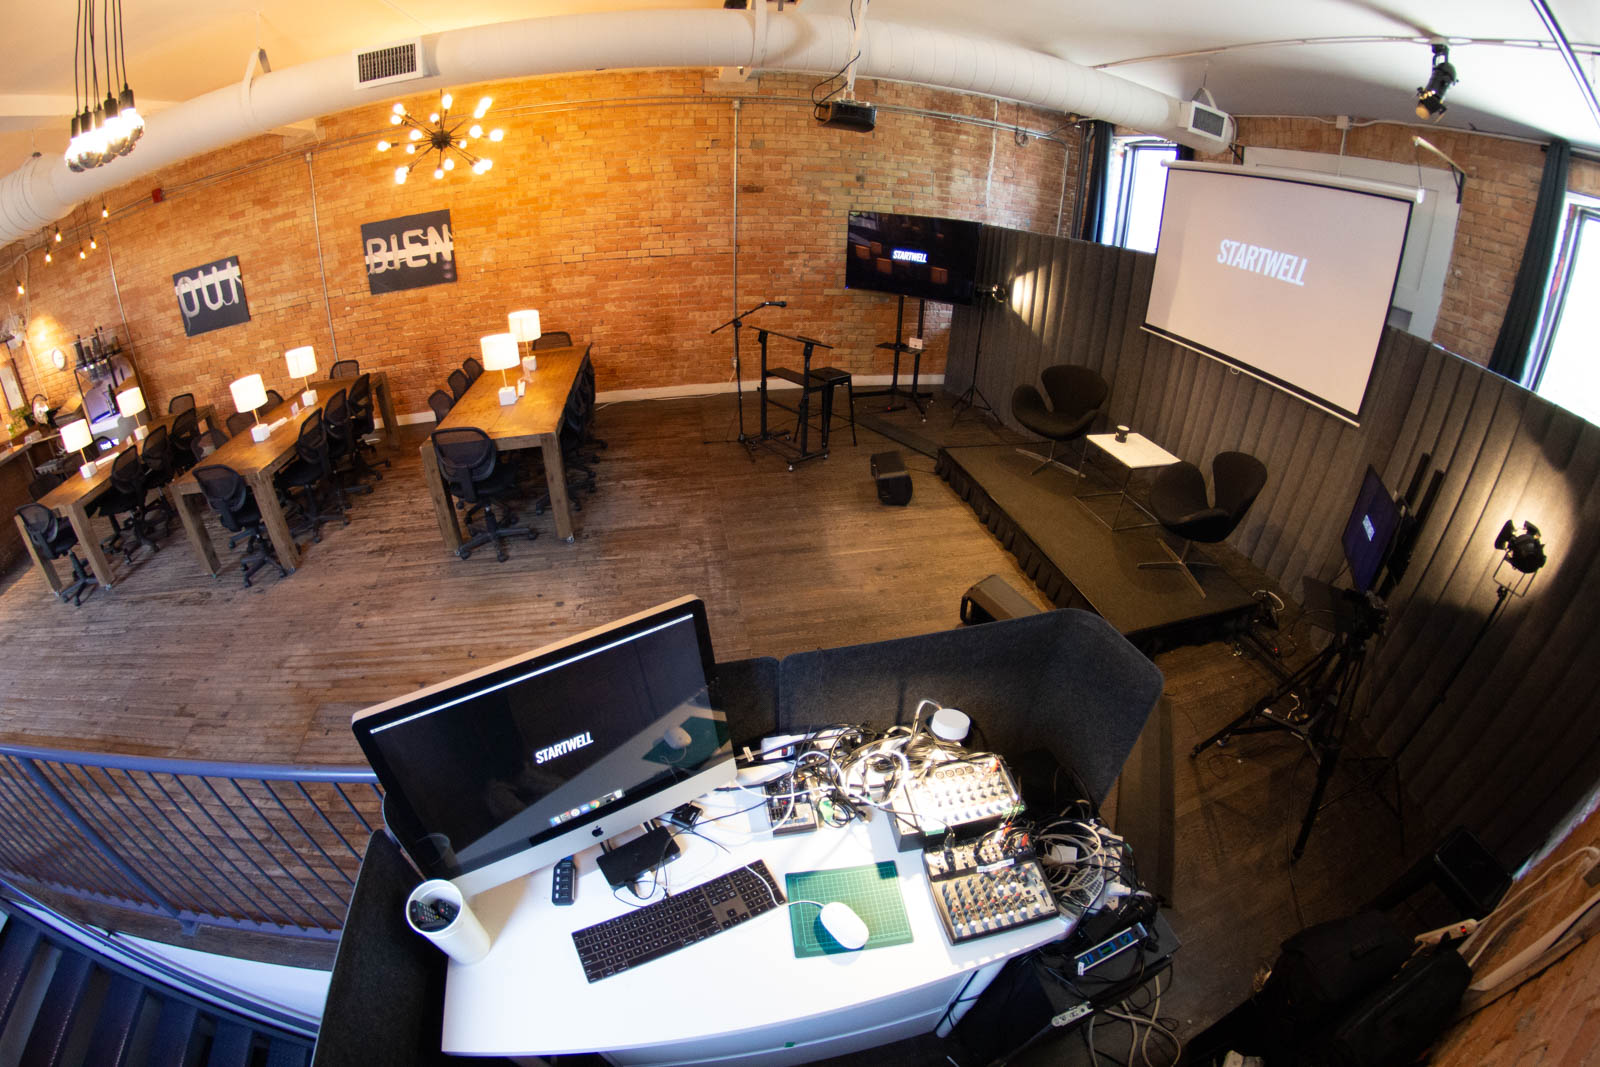 The Event Studio at StartWell